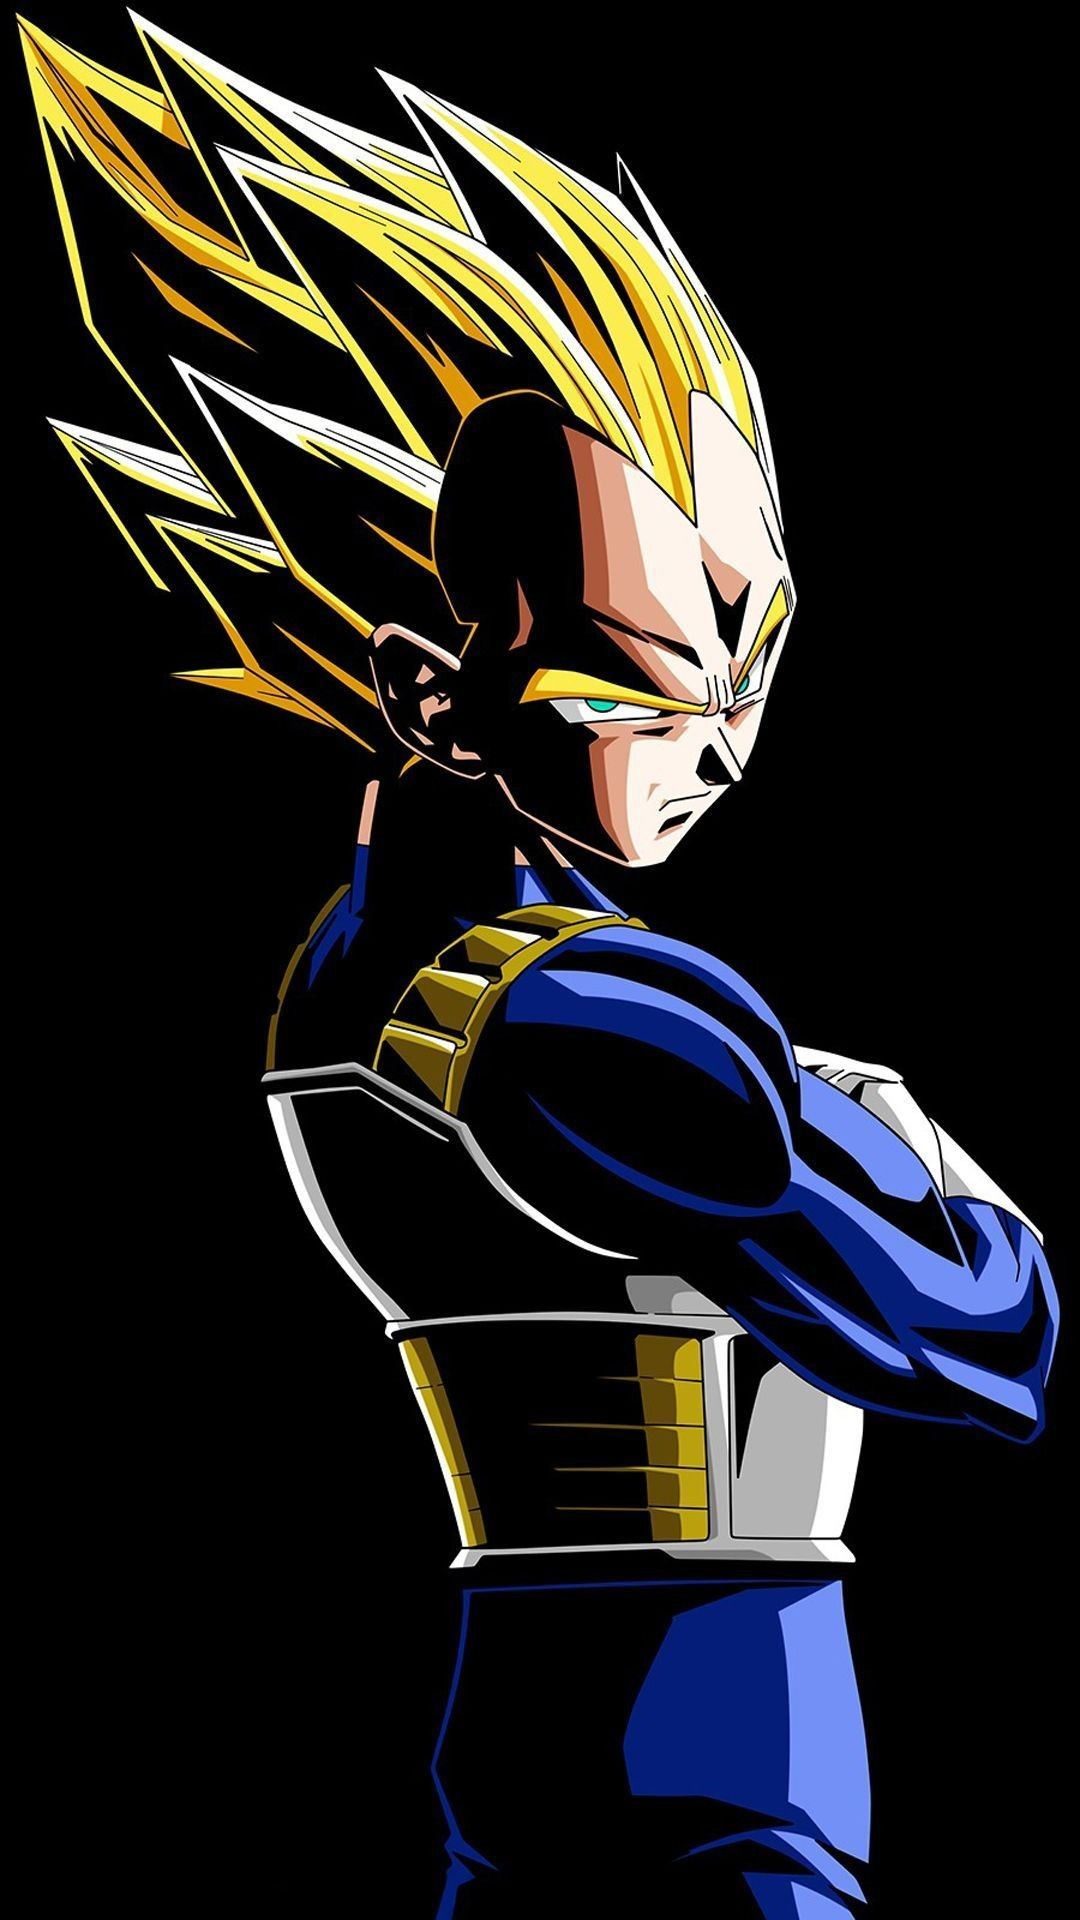 125 Dragon Ball Z Phone Android Iphone Desktop Hd Backgrounds Wallpapers 1080p 4k 1080x1920 2020